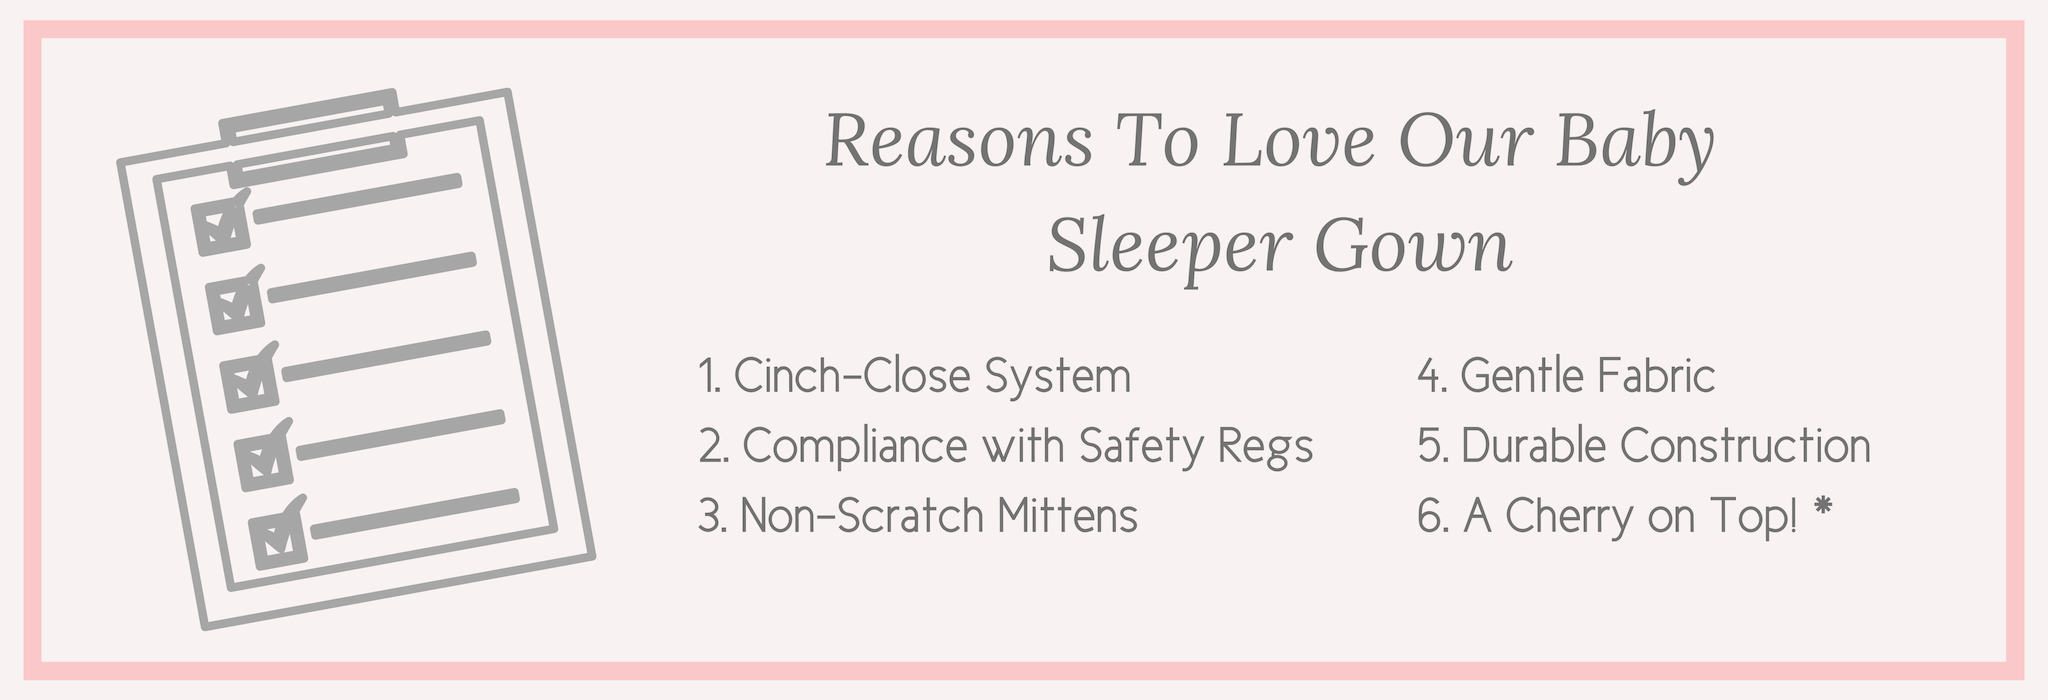 reasons-to-love-baby-sleeper-gown